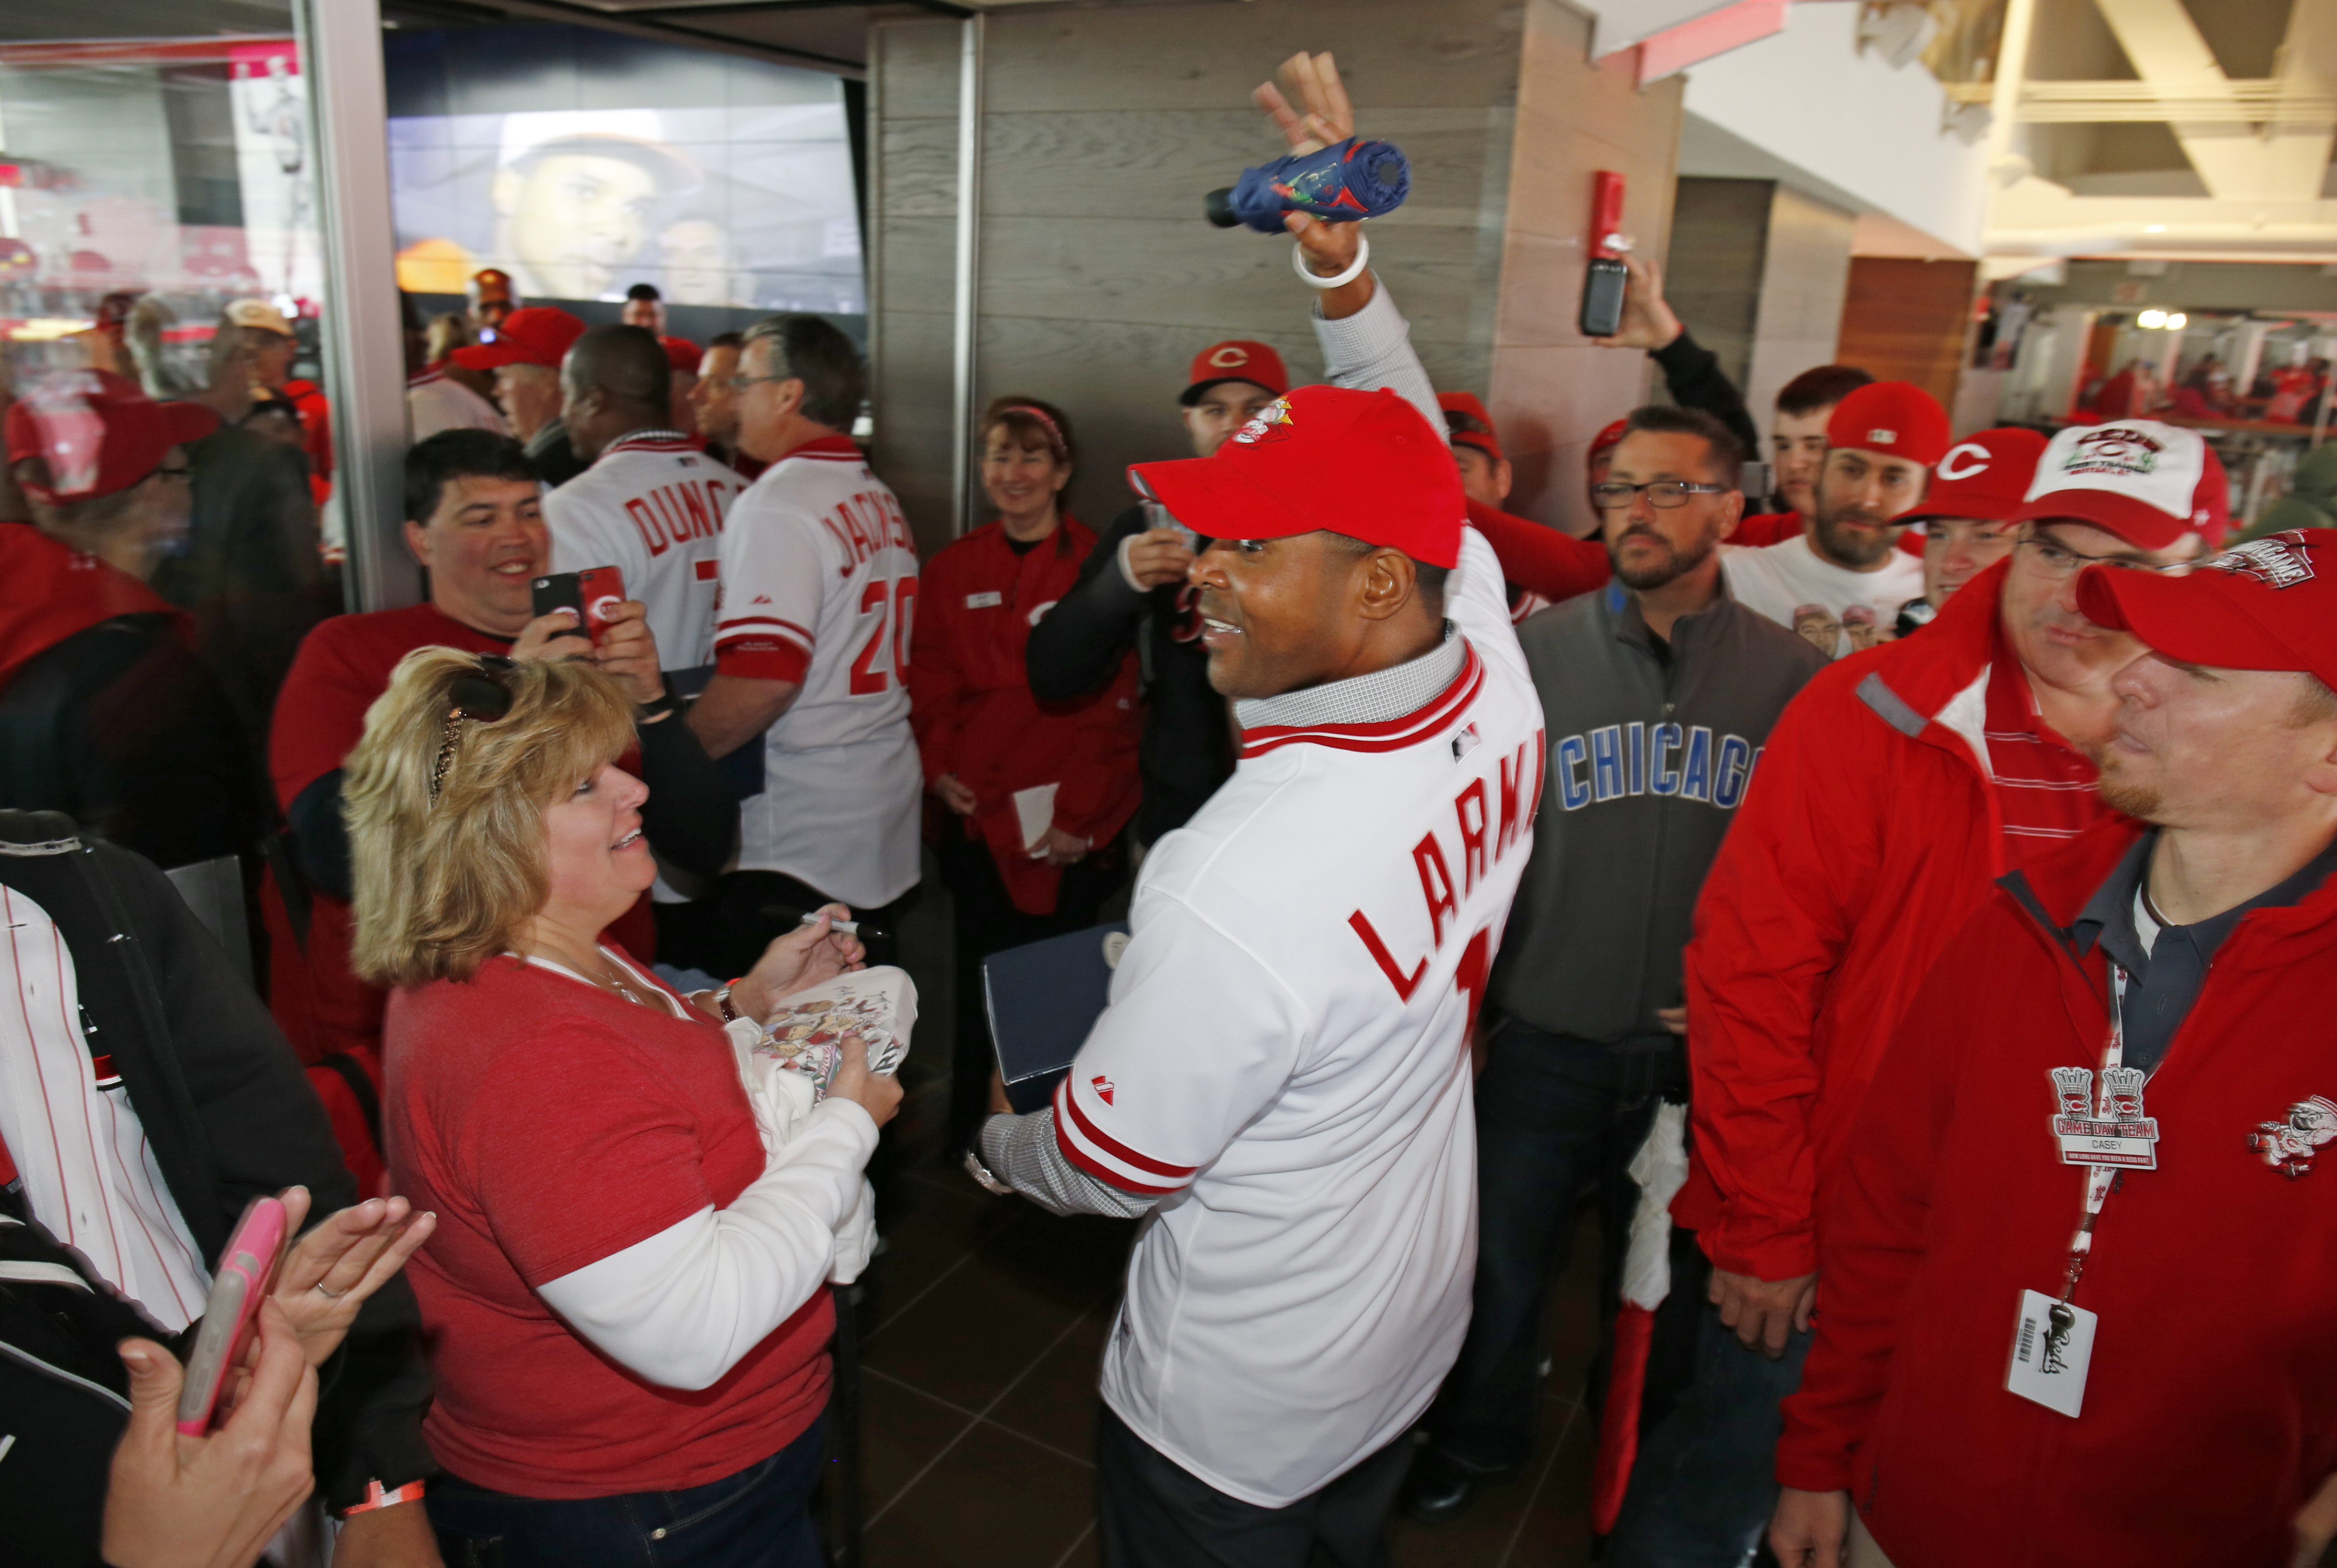 Former Cincinnati Reds' shortstop, Barry Larkin, a member of the Cincinnati Reds 1990 World Series championship team, waves to fans after the 1990 team was honored in a ceremony before a baseball game between the Chicago Cubs and Cincinnati Reds, Saturday